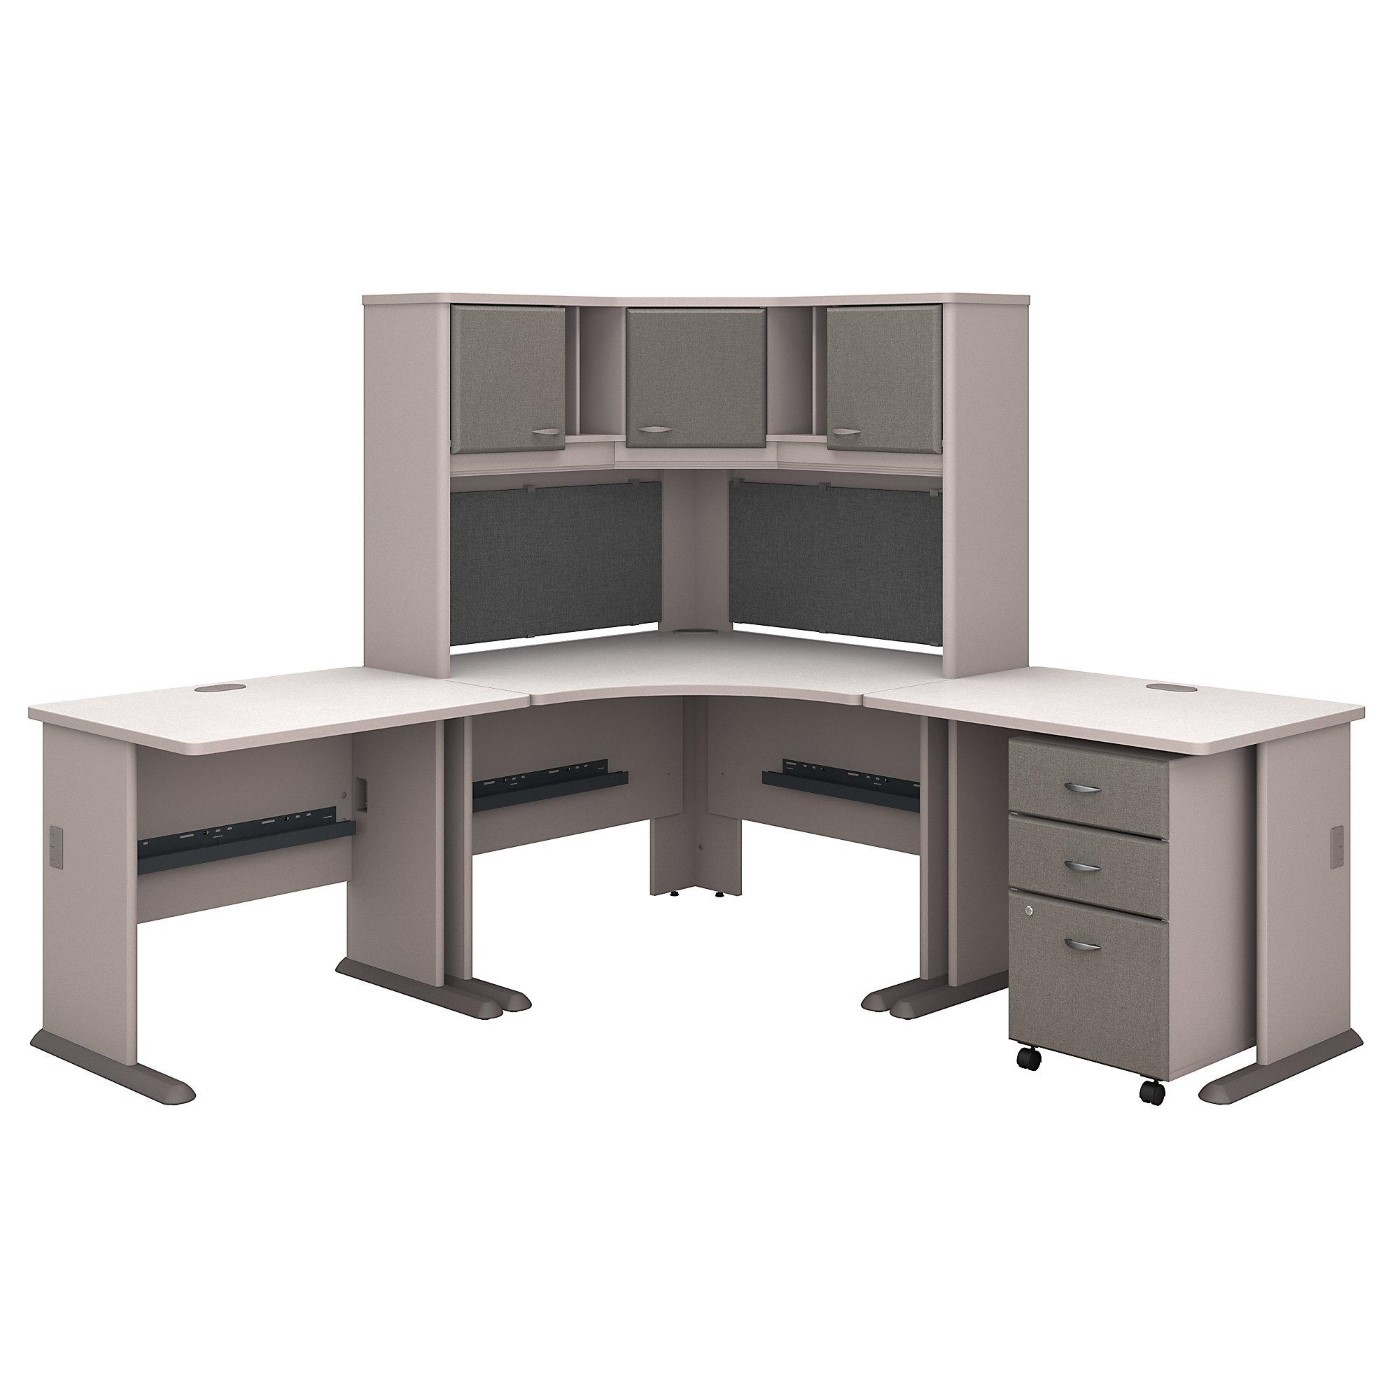 BUSH BUSINESS FURNITURE SERIES A 84W X 84D CORNER DESK WITH HUTCH AND MOBILE FILE CABINET. FREE SHIPPING: SALE DEDUCT 10% MORE ENTER '10percent' IN COUPON CODE BOX WHILE CHECKING OUT.